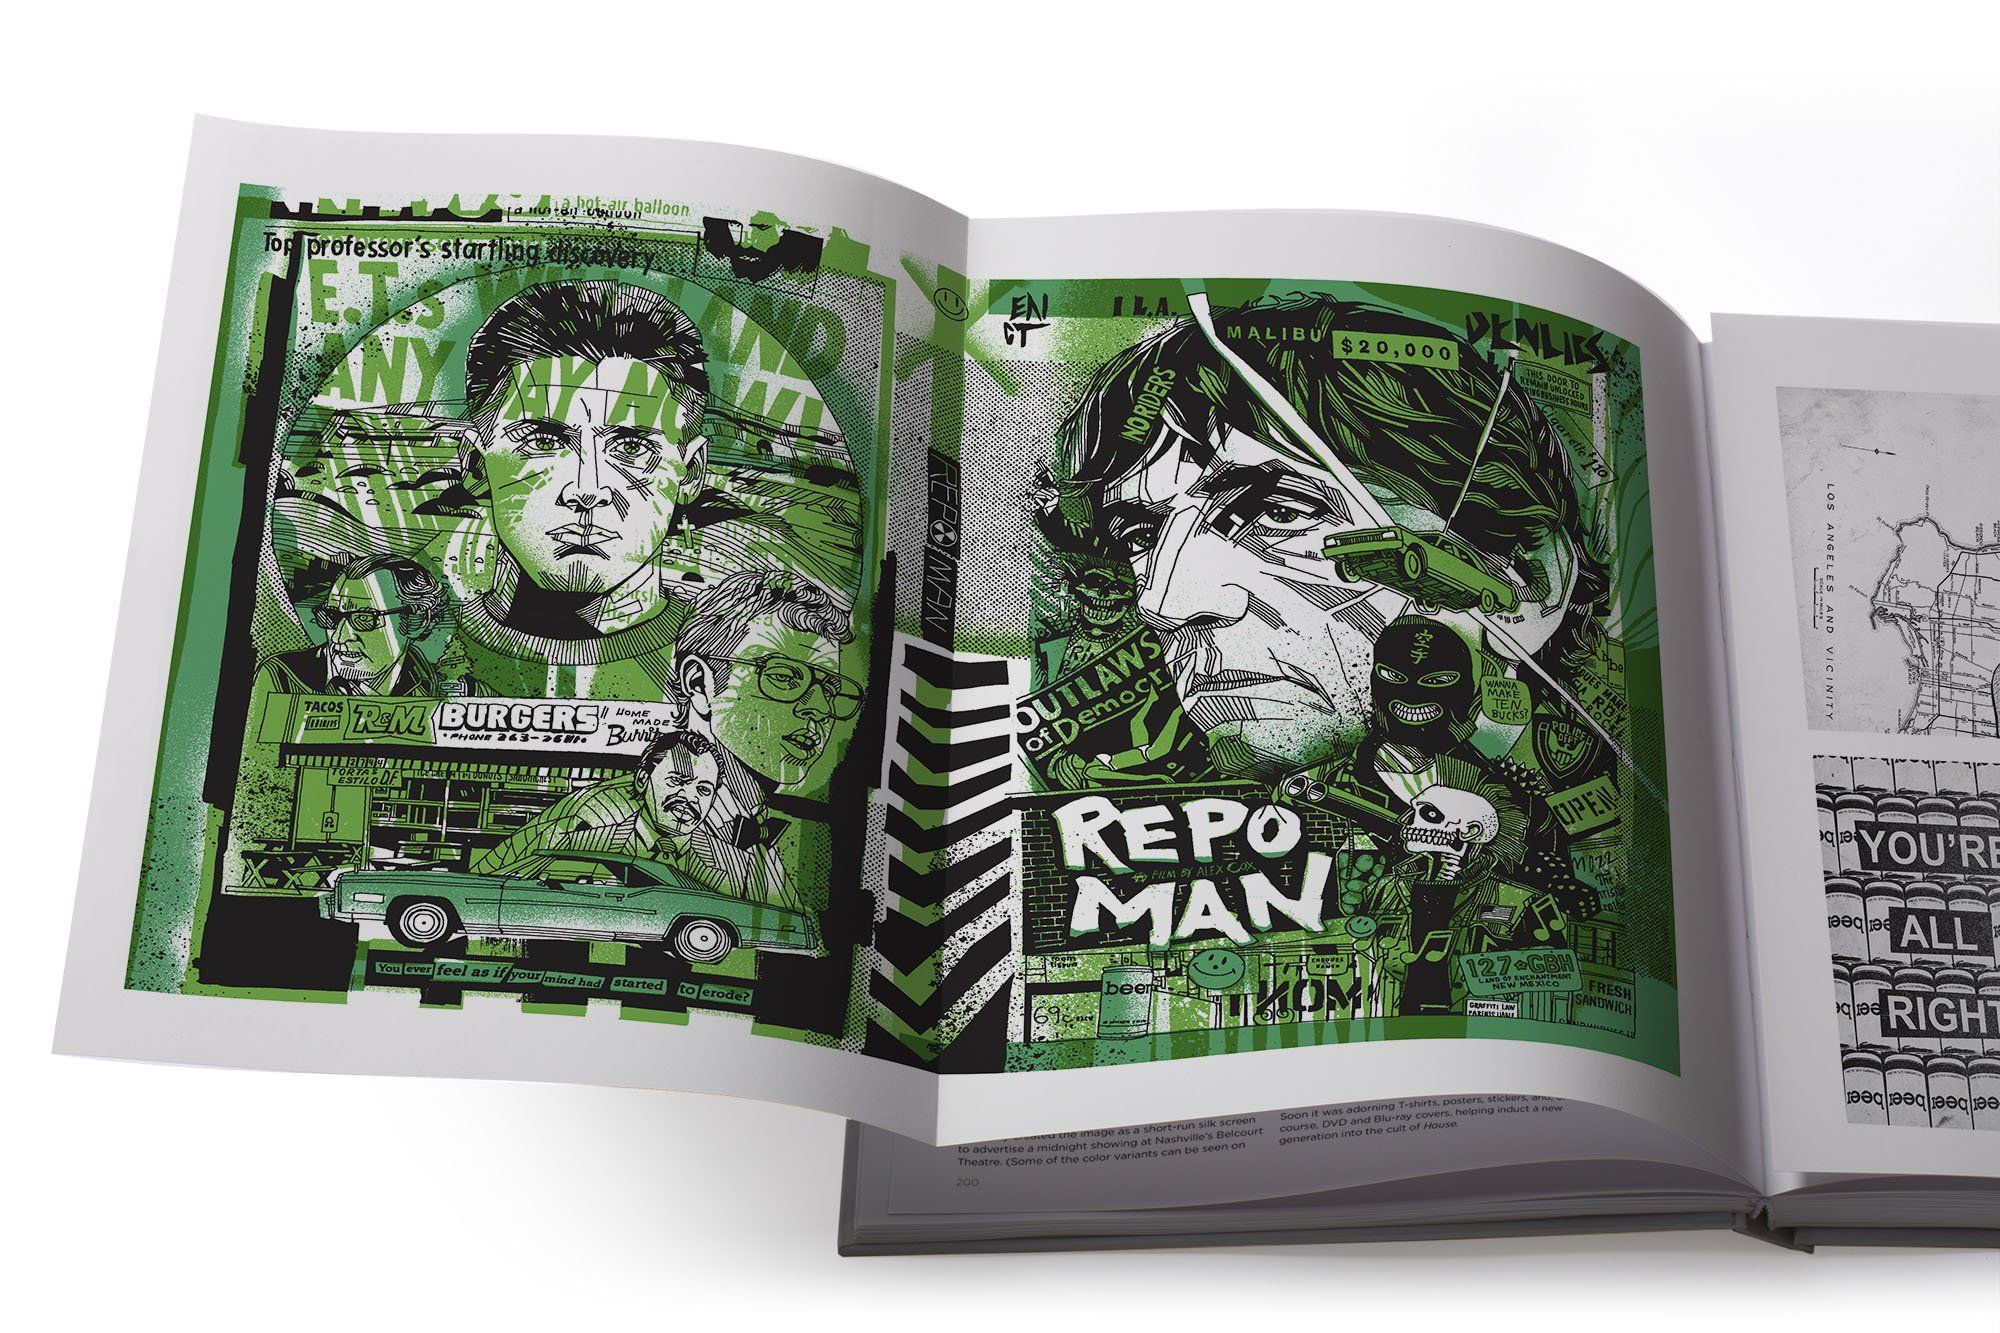 gift idea: buy the criterion designs coffee-table book for a movie